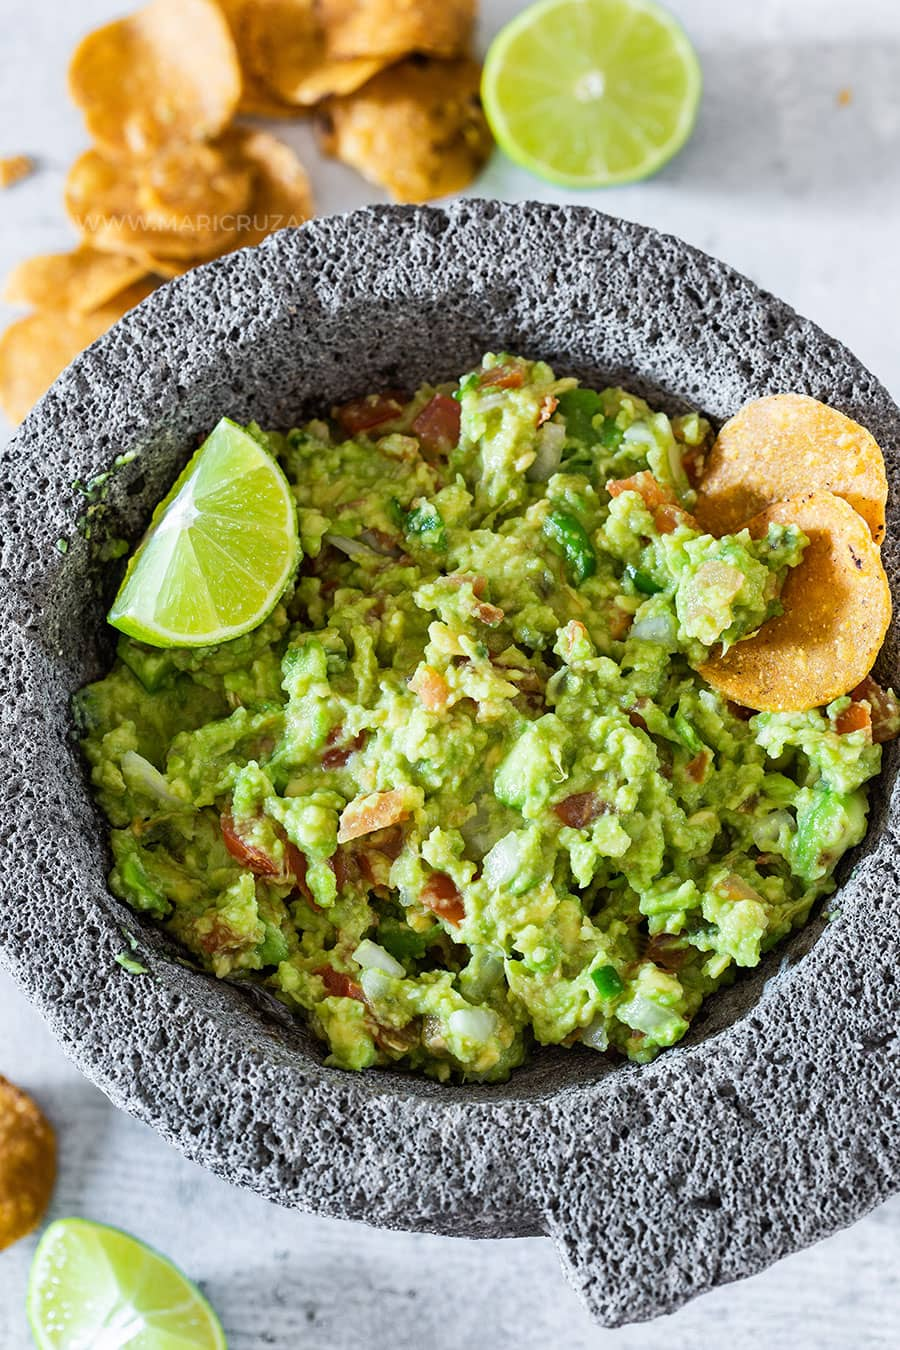 A molcajete with guacamole from above.